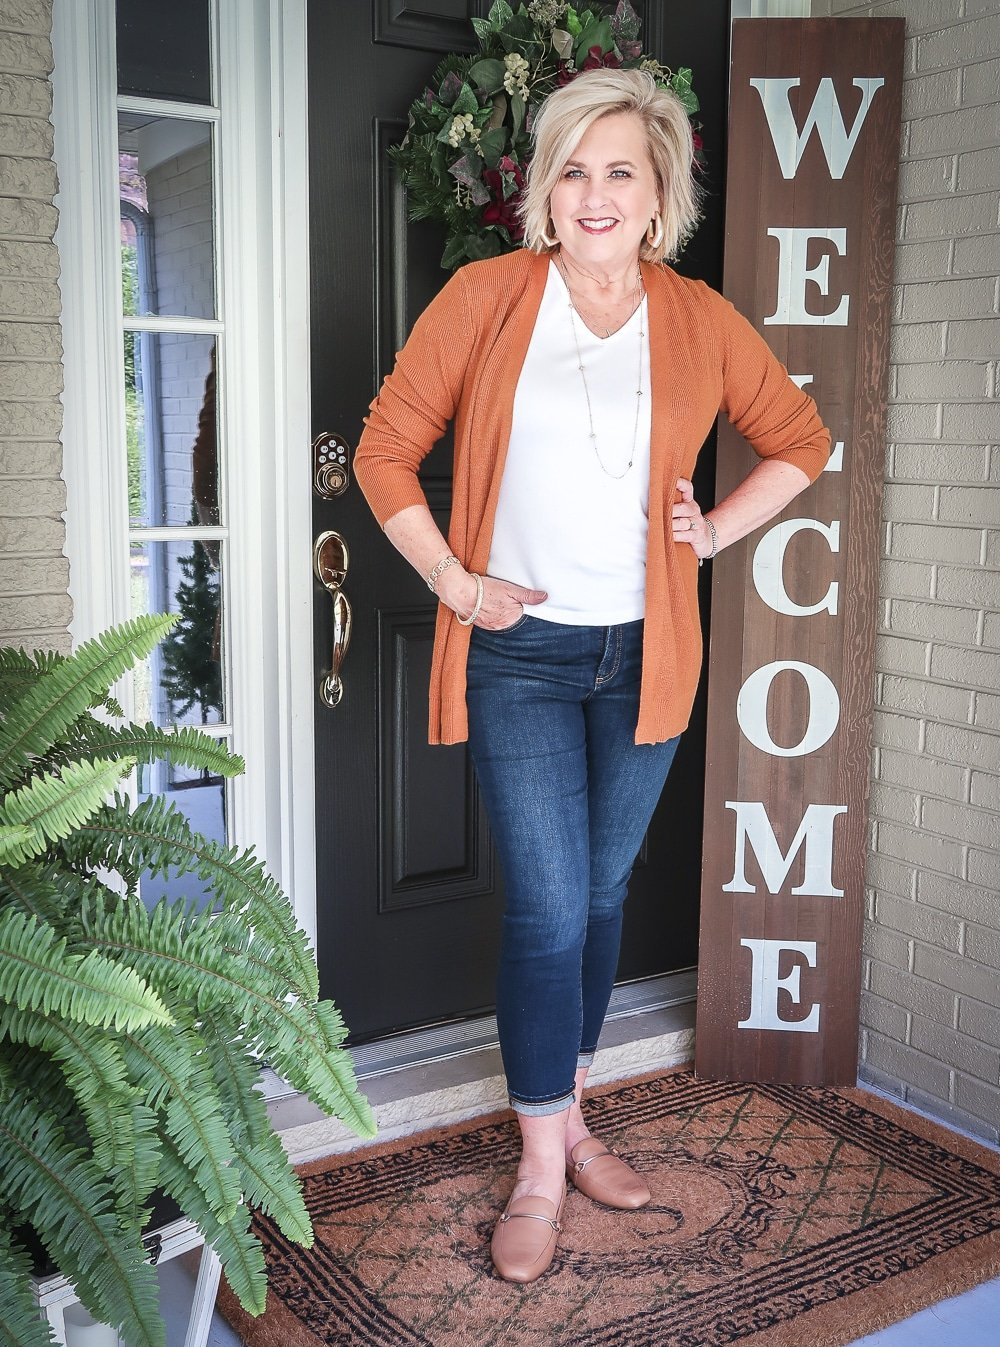 Fashion Blogger 50 Is Not Old is doing a Tuesday Try-On Session with Target and styling a rust cardigan with a white v-neck tee shirt